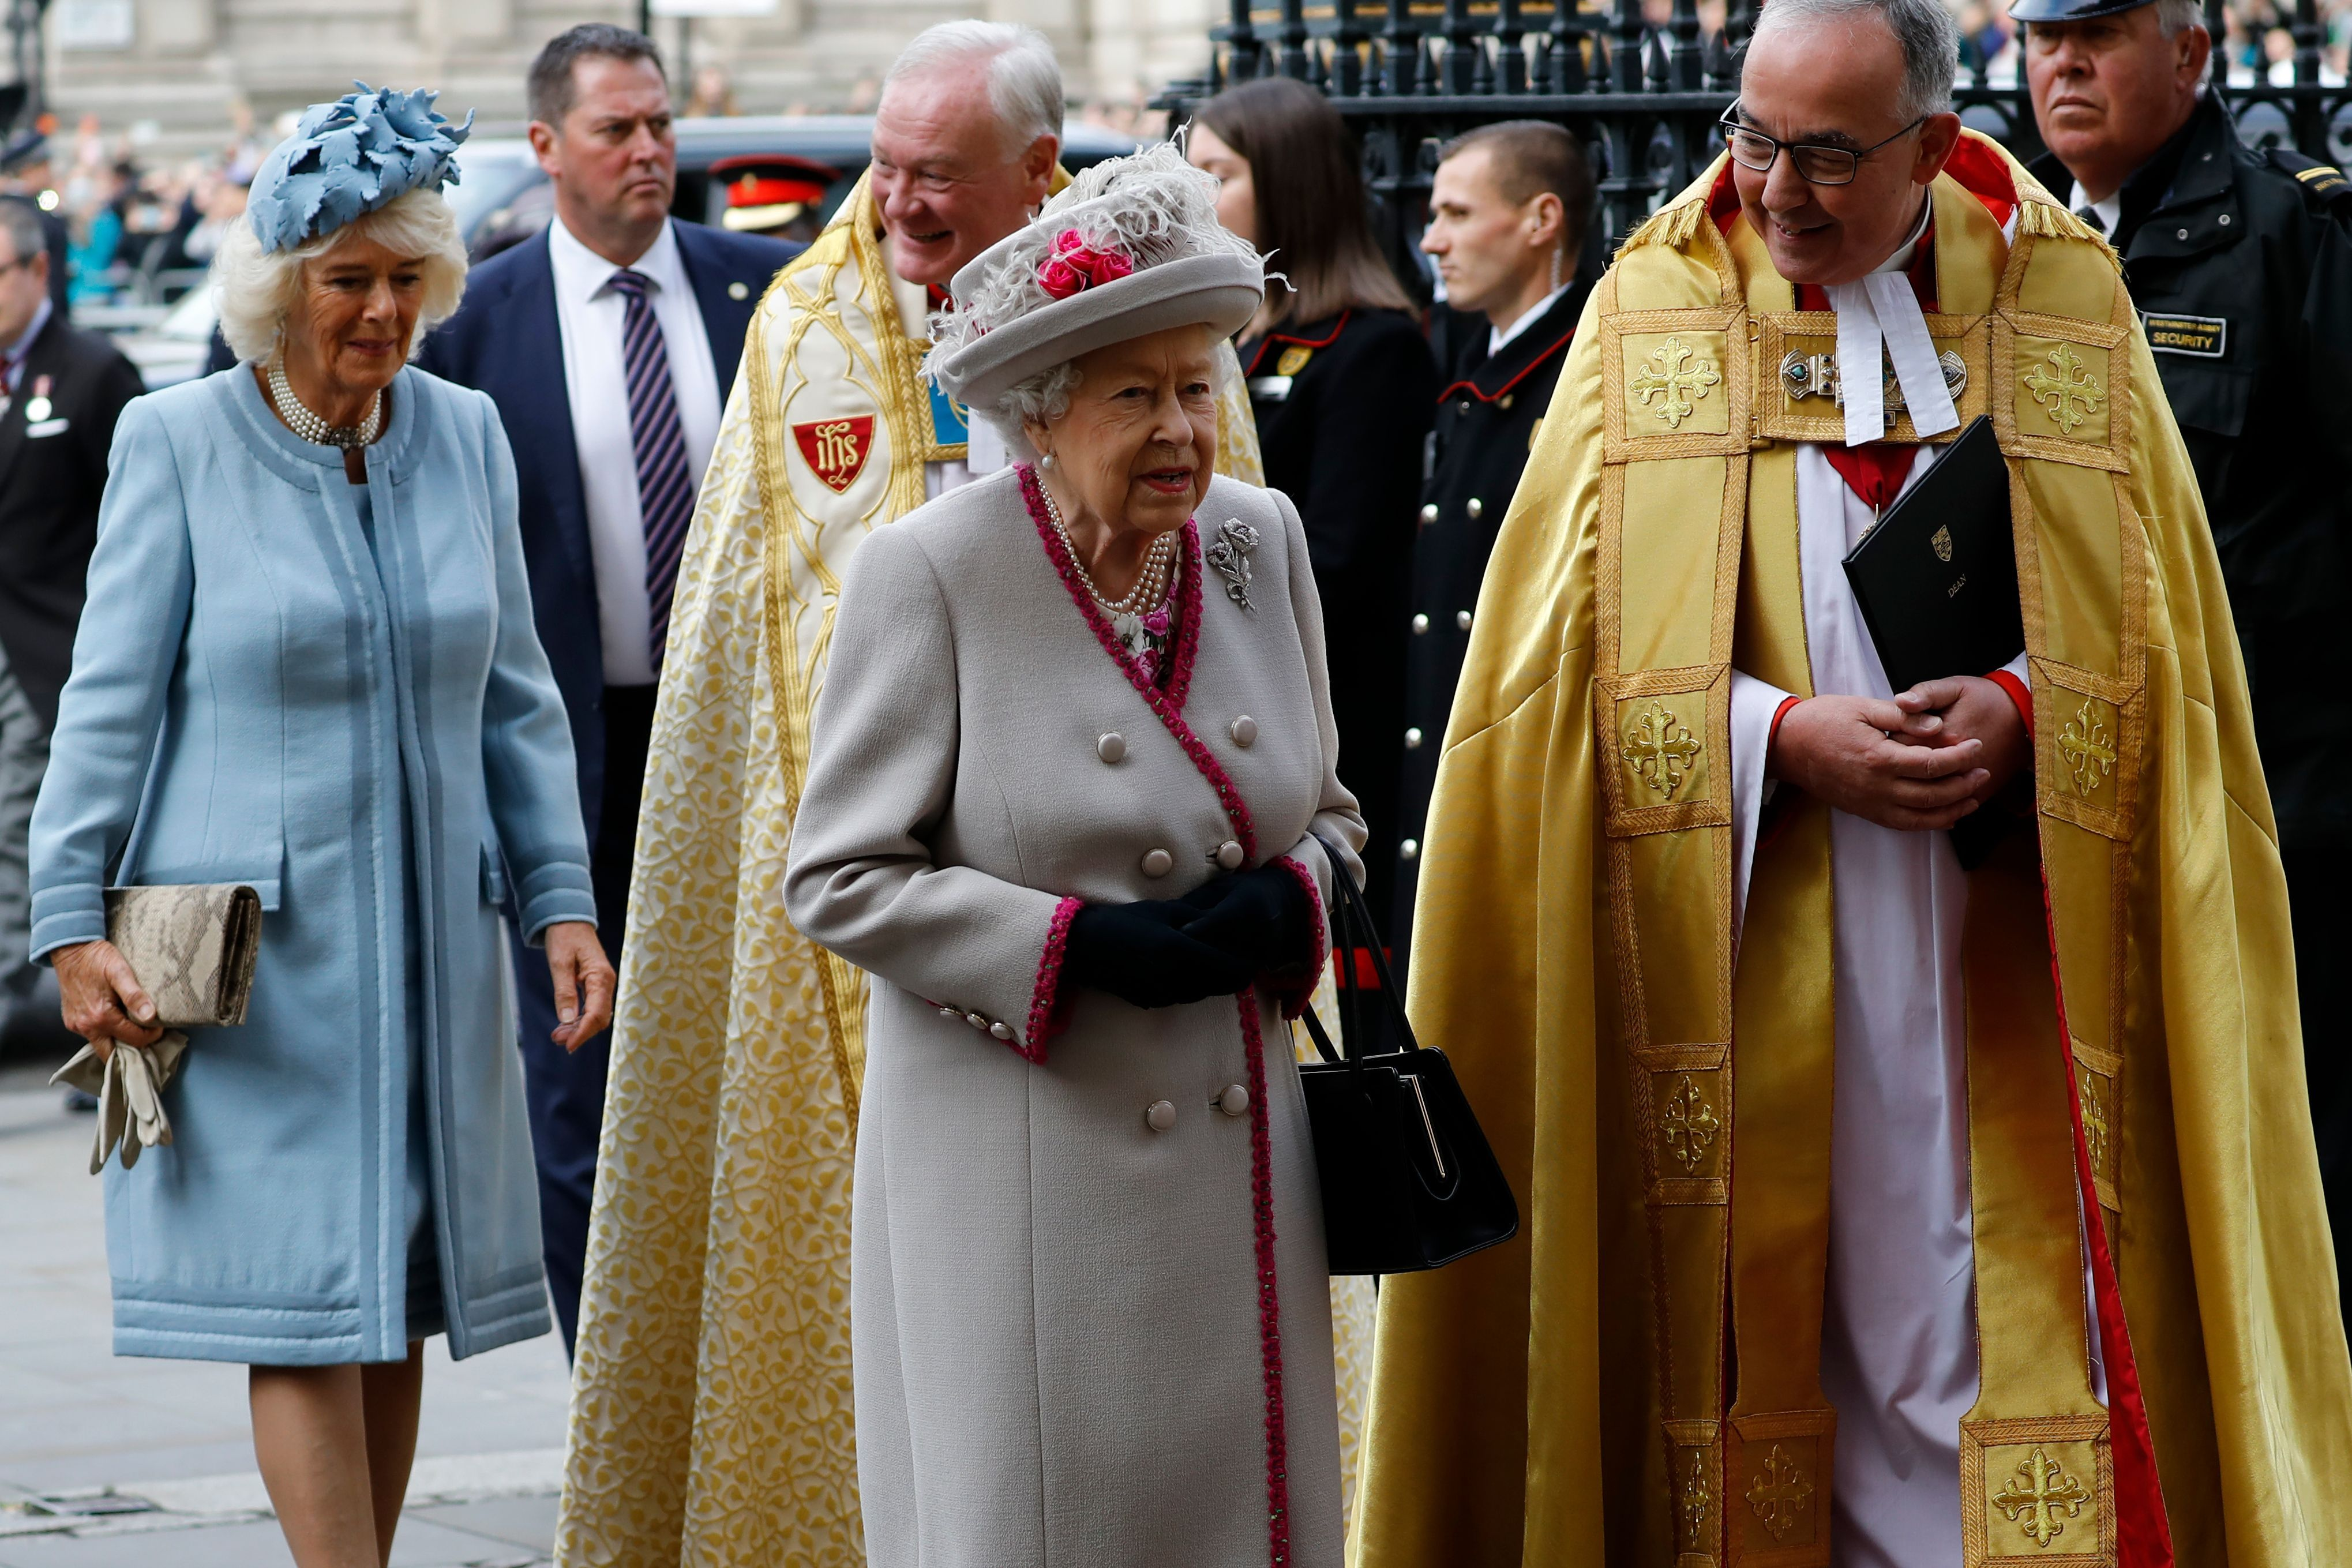 See All the Photos of Queen Elizabeth and Camilla at Westminster Abbey This Morning